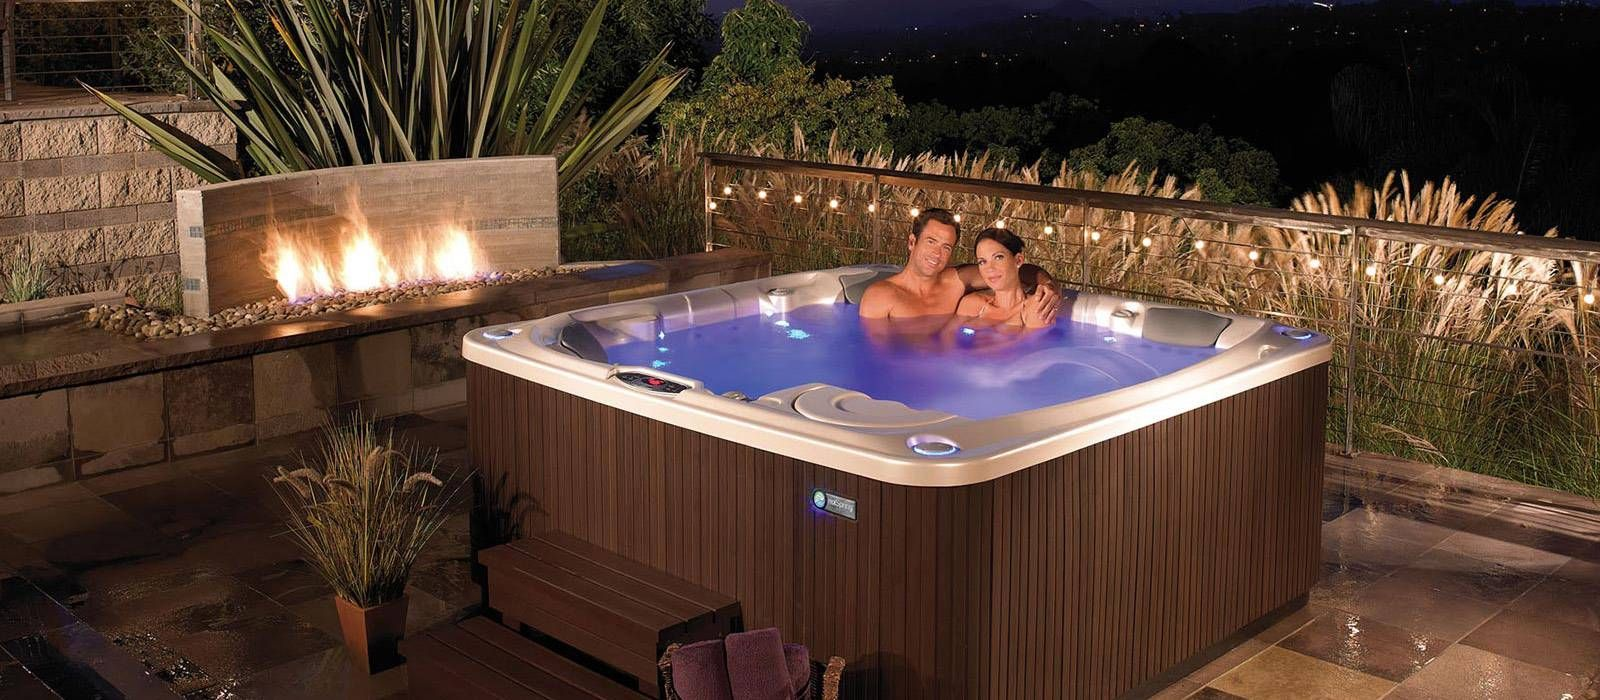 hot tub patio ideas hottubpatioideas deck with hot tub ideas ct pool backyard ideas with hot